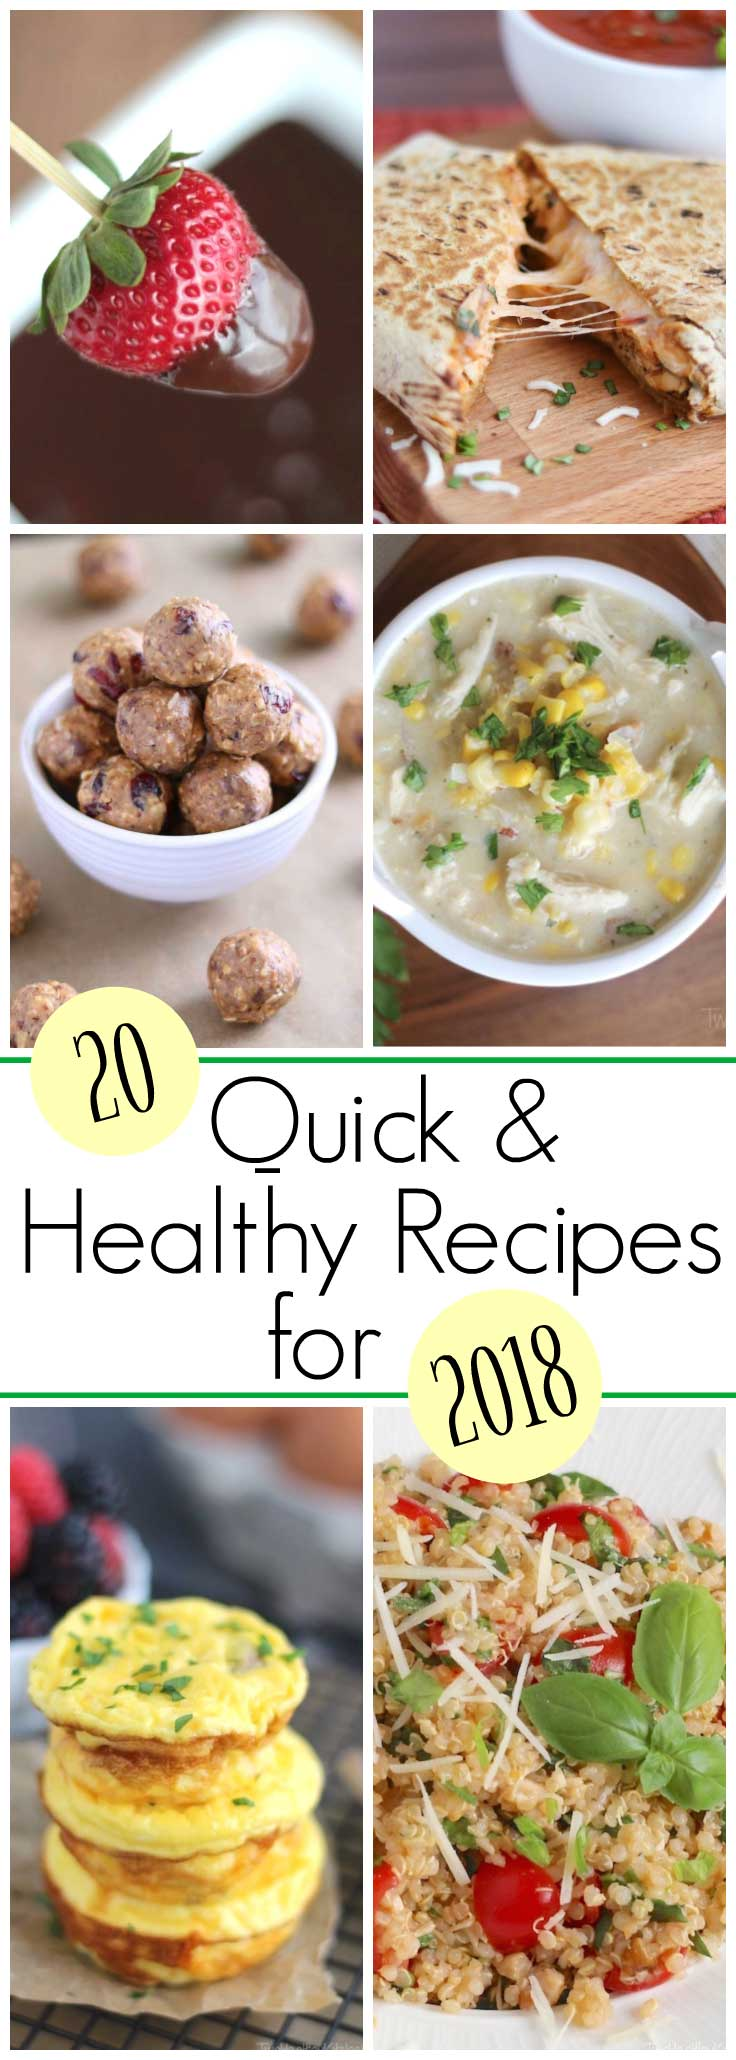 recipes healthy quick favorite ve vegetarian food easy recipe breakfast twohealthykitchens need paleo gluten whether dessert